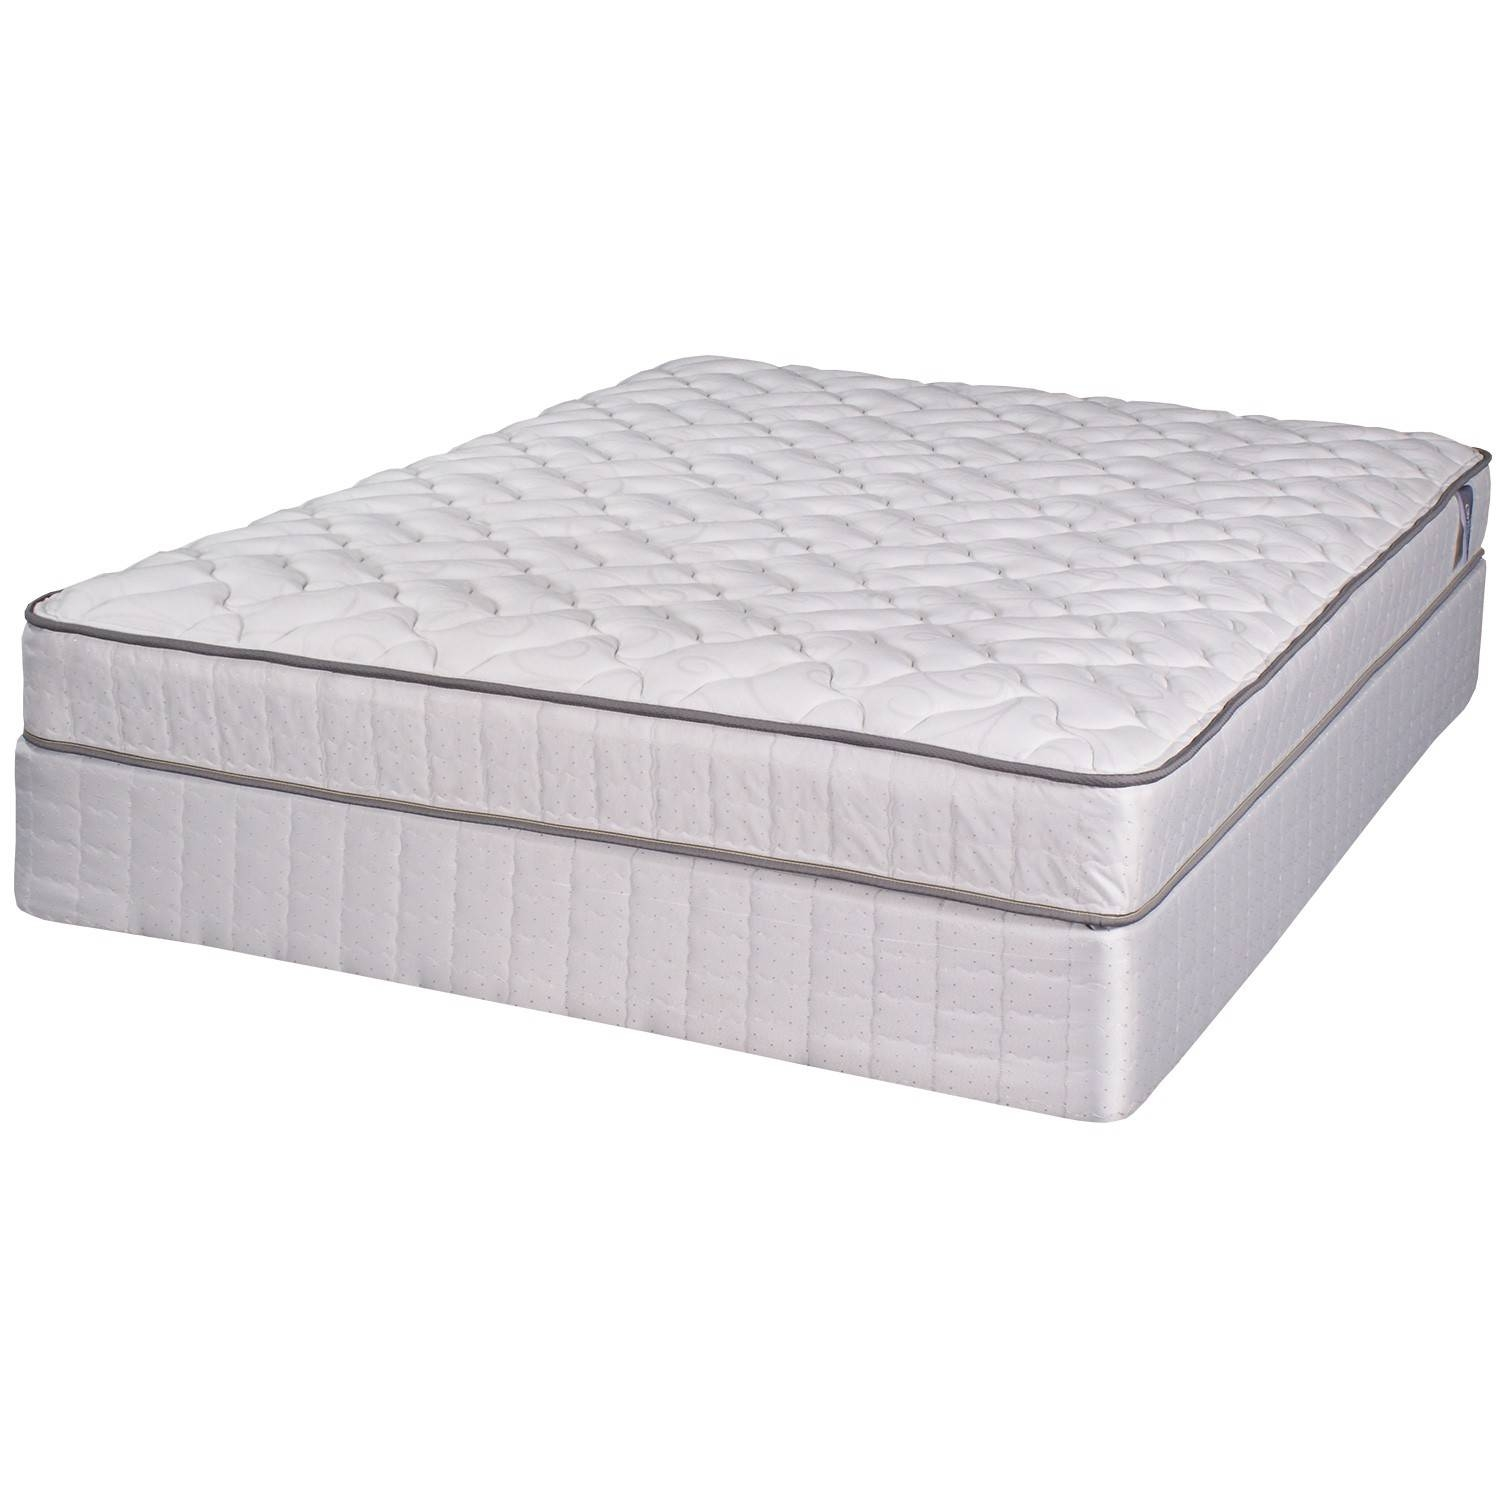 bed simmons gel and foam mattress review beauty primifina novaform costco rest sets memory spring